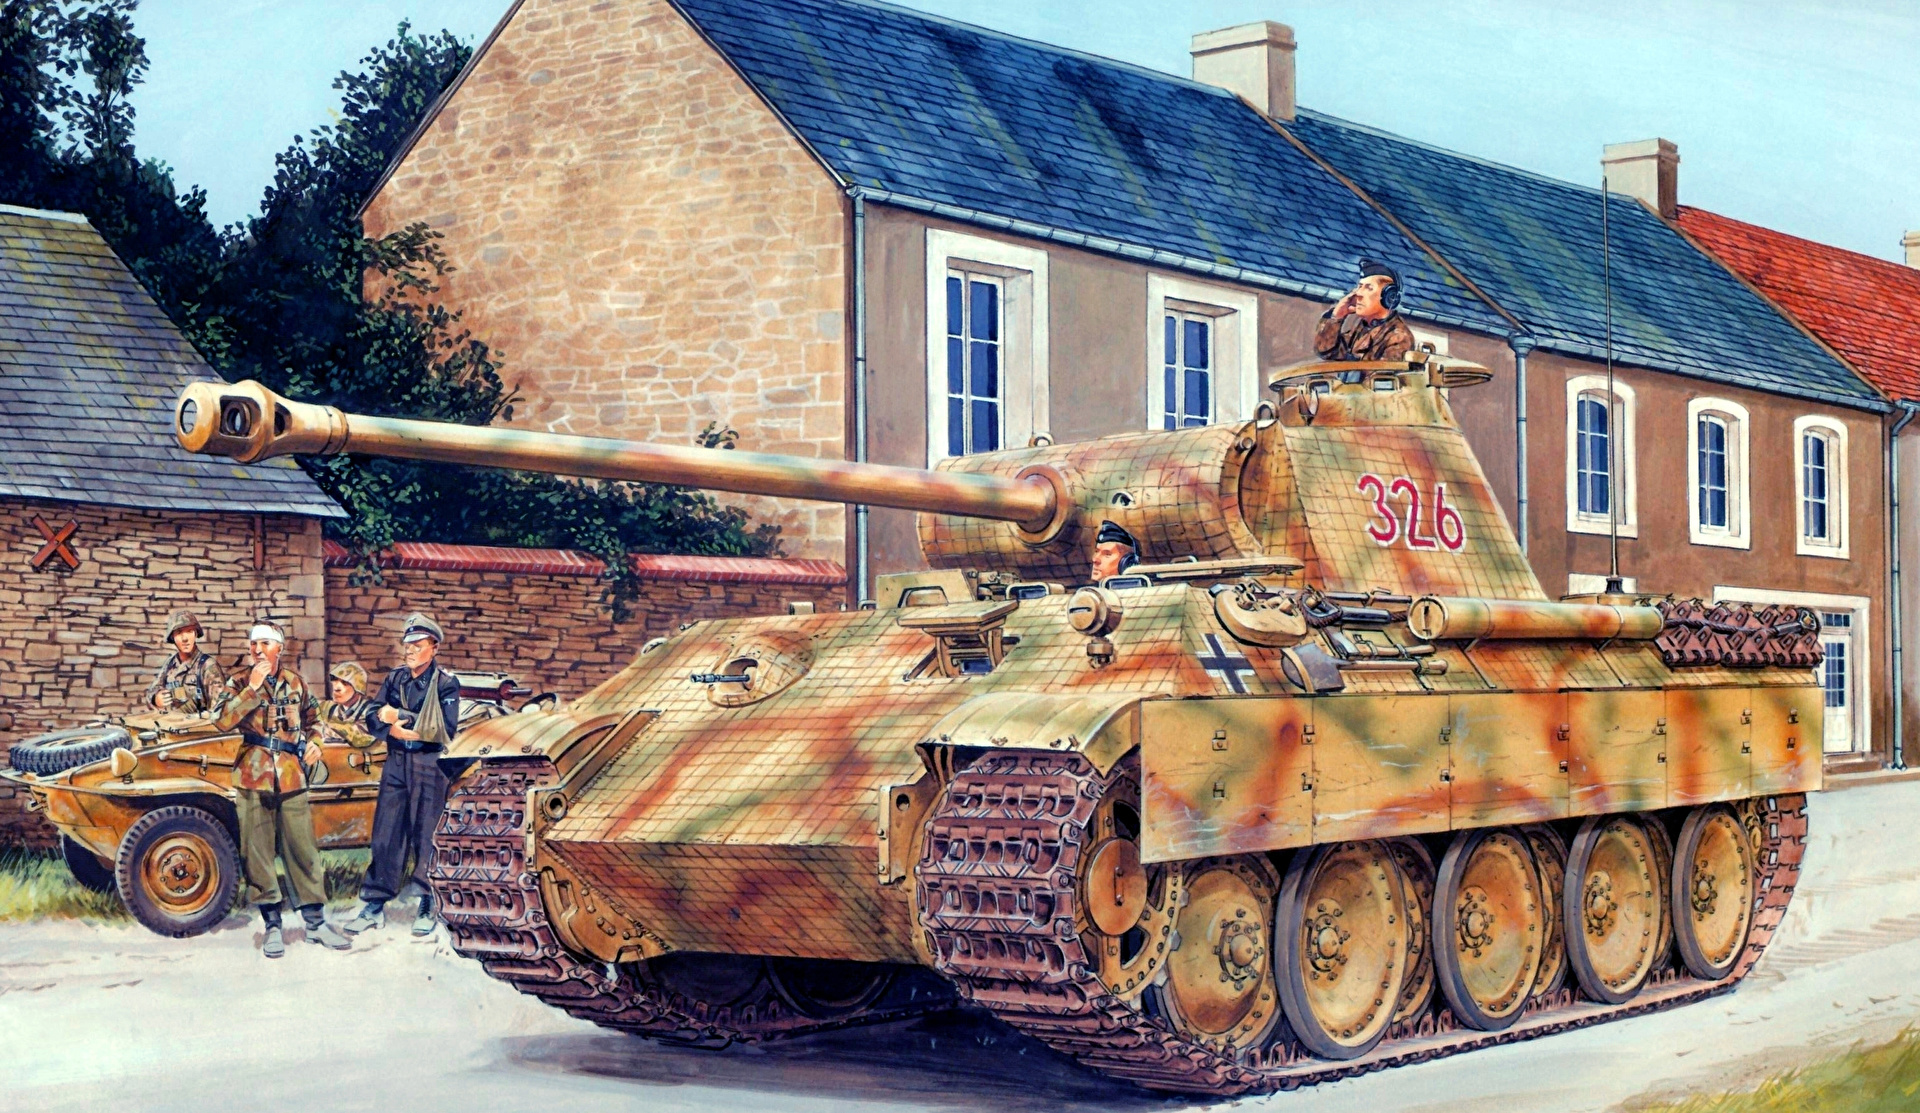 Germany WW2 Panther tank seized from pensioners cellar